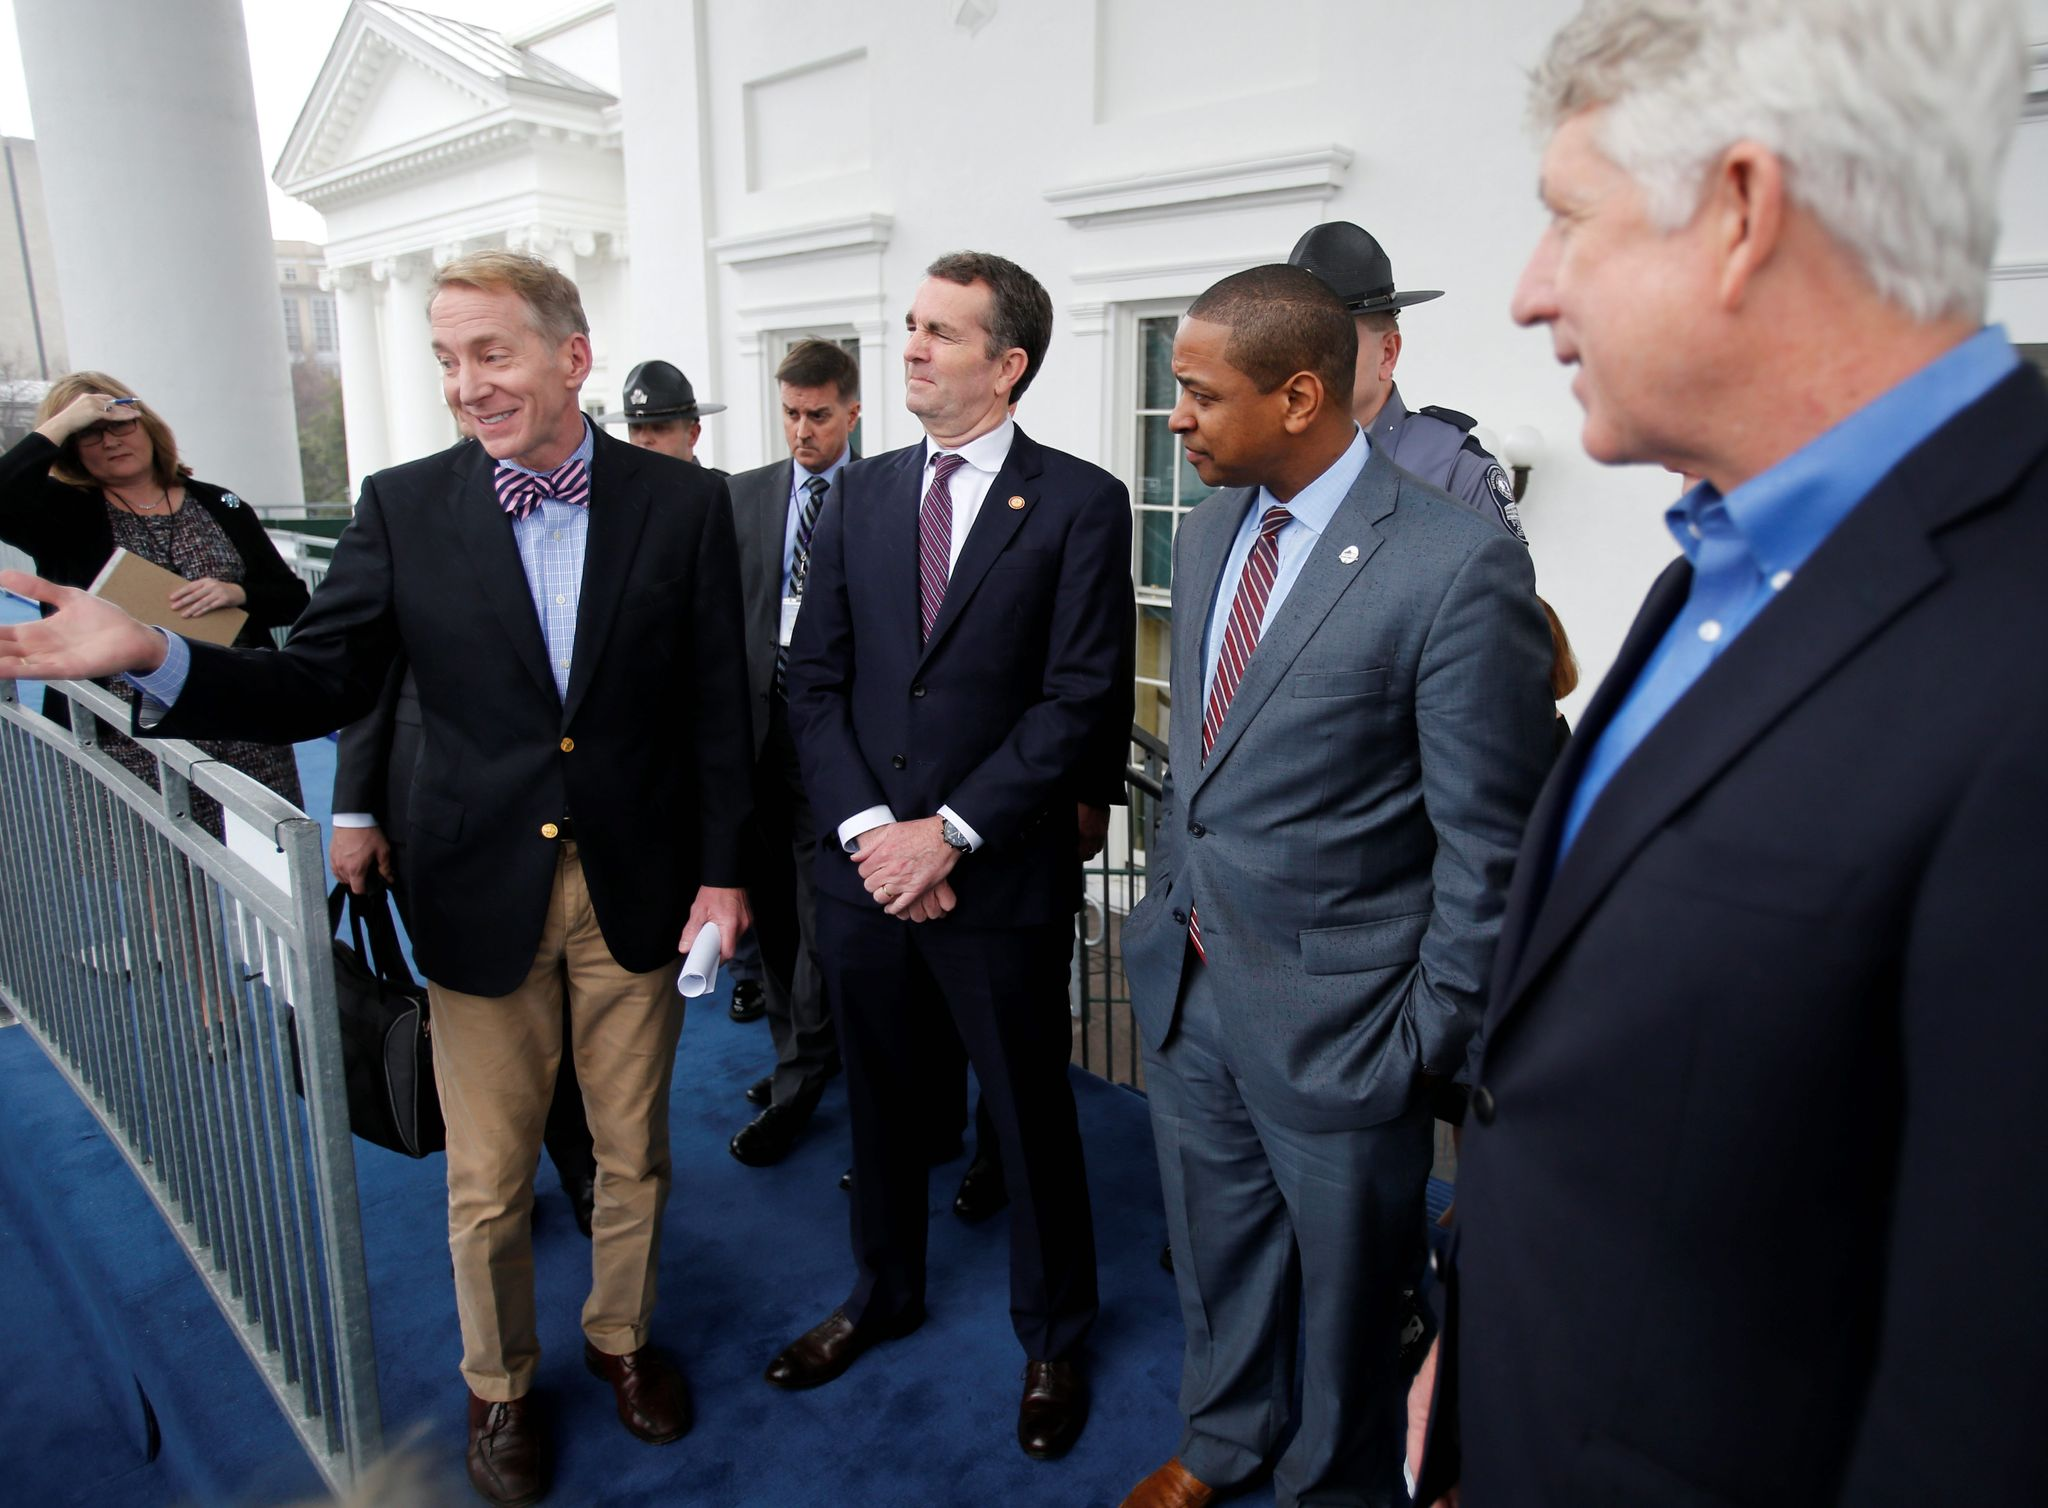 Virginia scandals' fallout to test special election